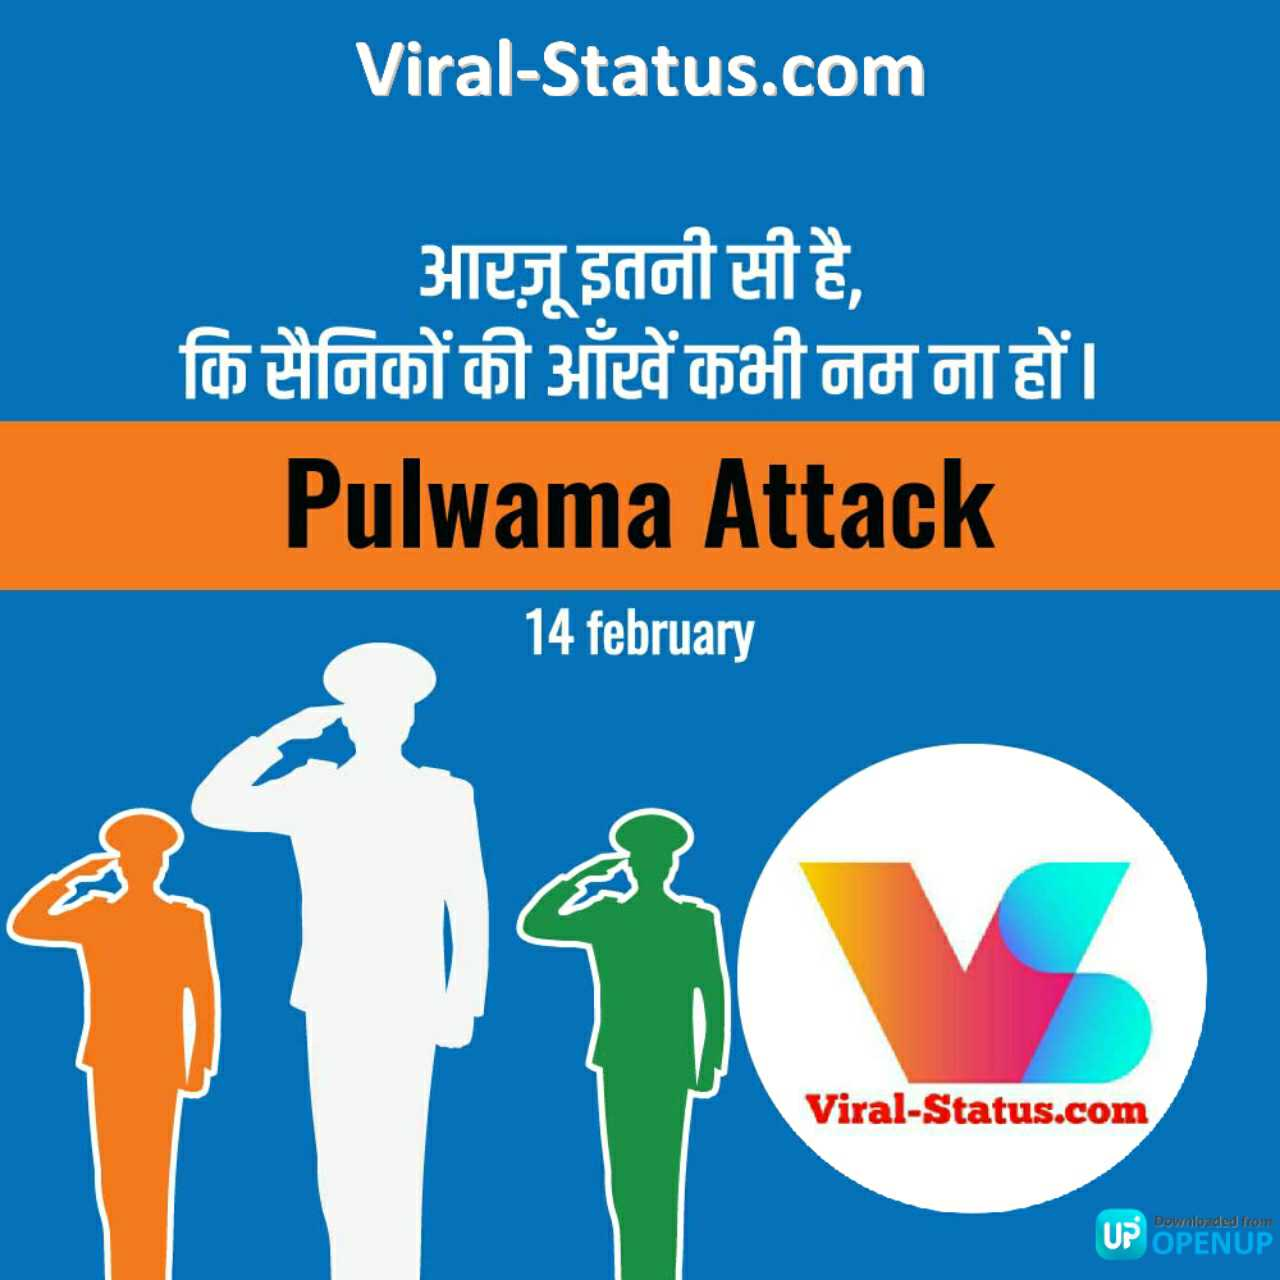 pulwama attack images for whatsapp